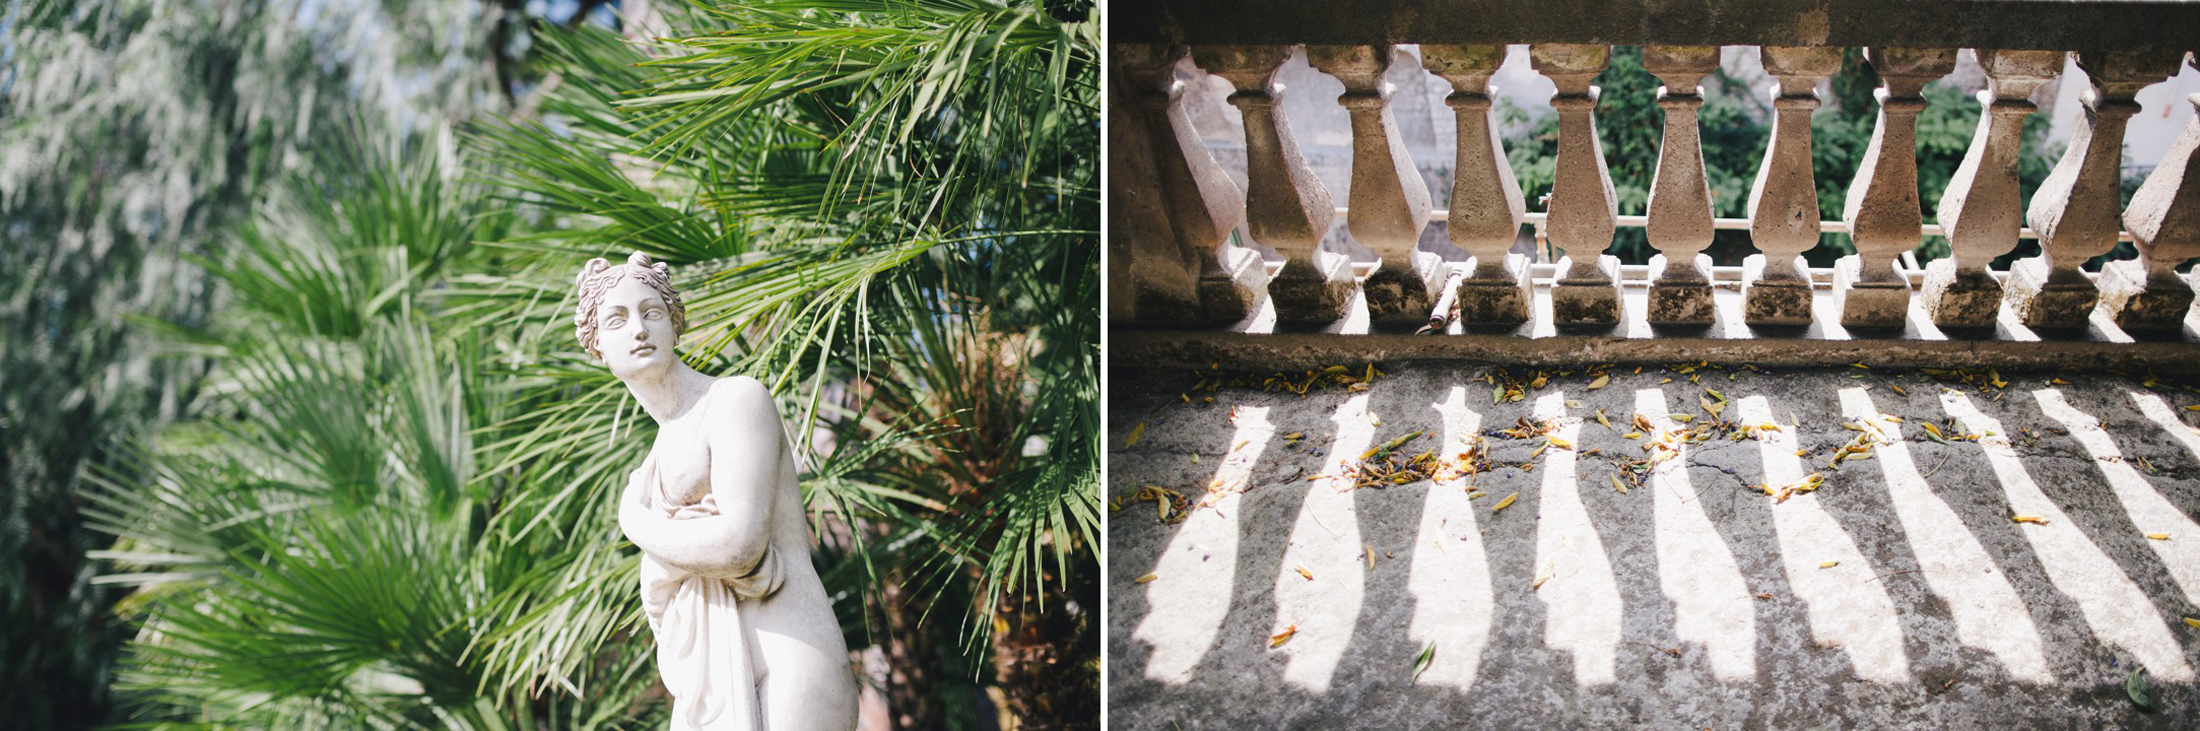 collage details from hotel excelsior vittoria in sorrento